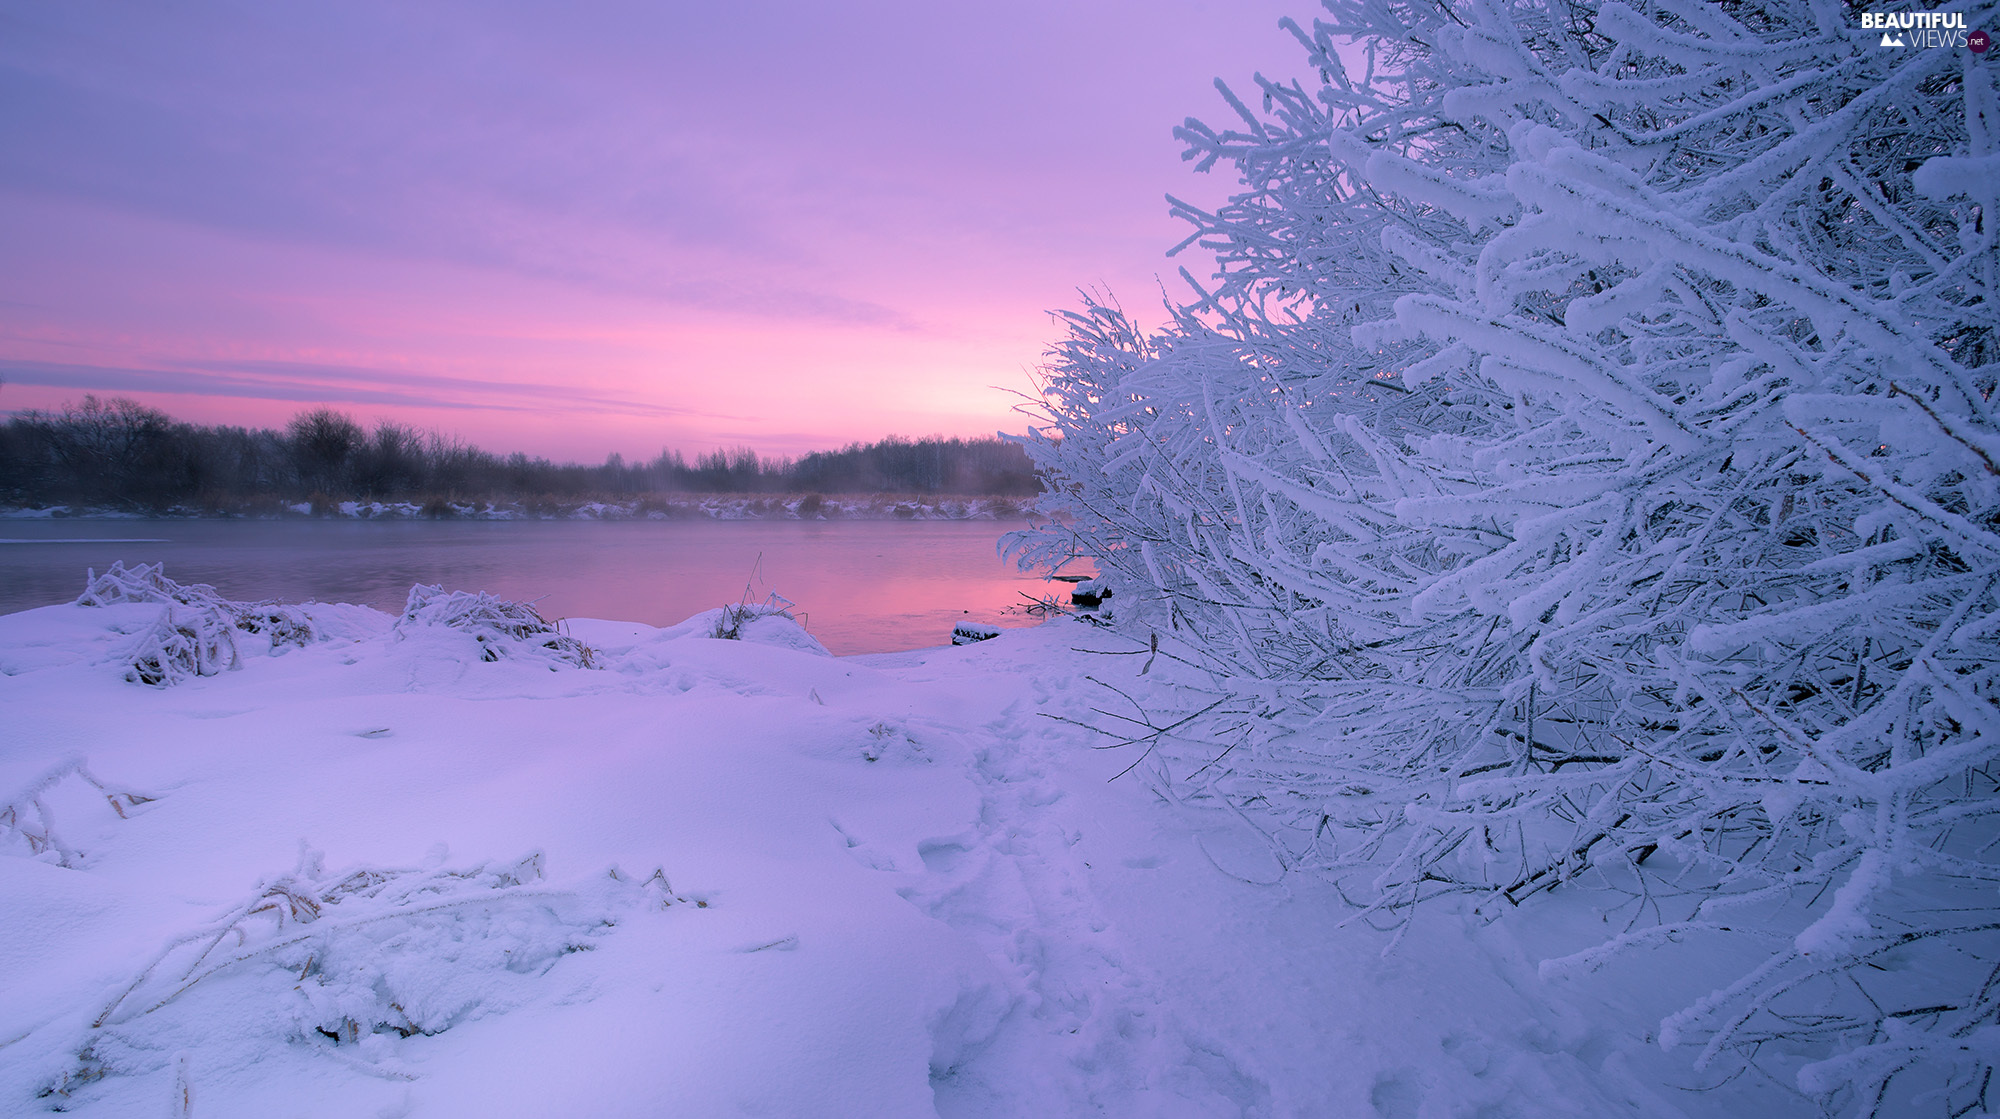 Bush, trees, lake, viewes, winter, White frost, Great Sunsets